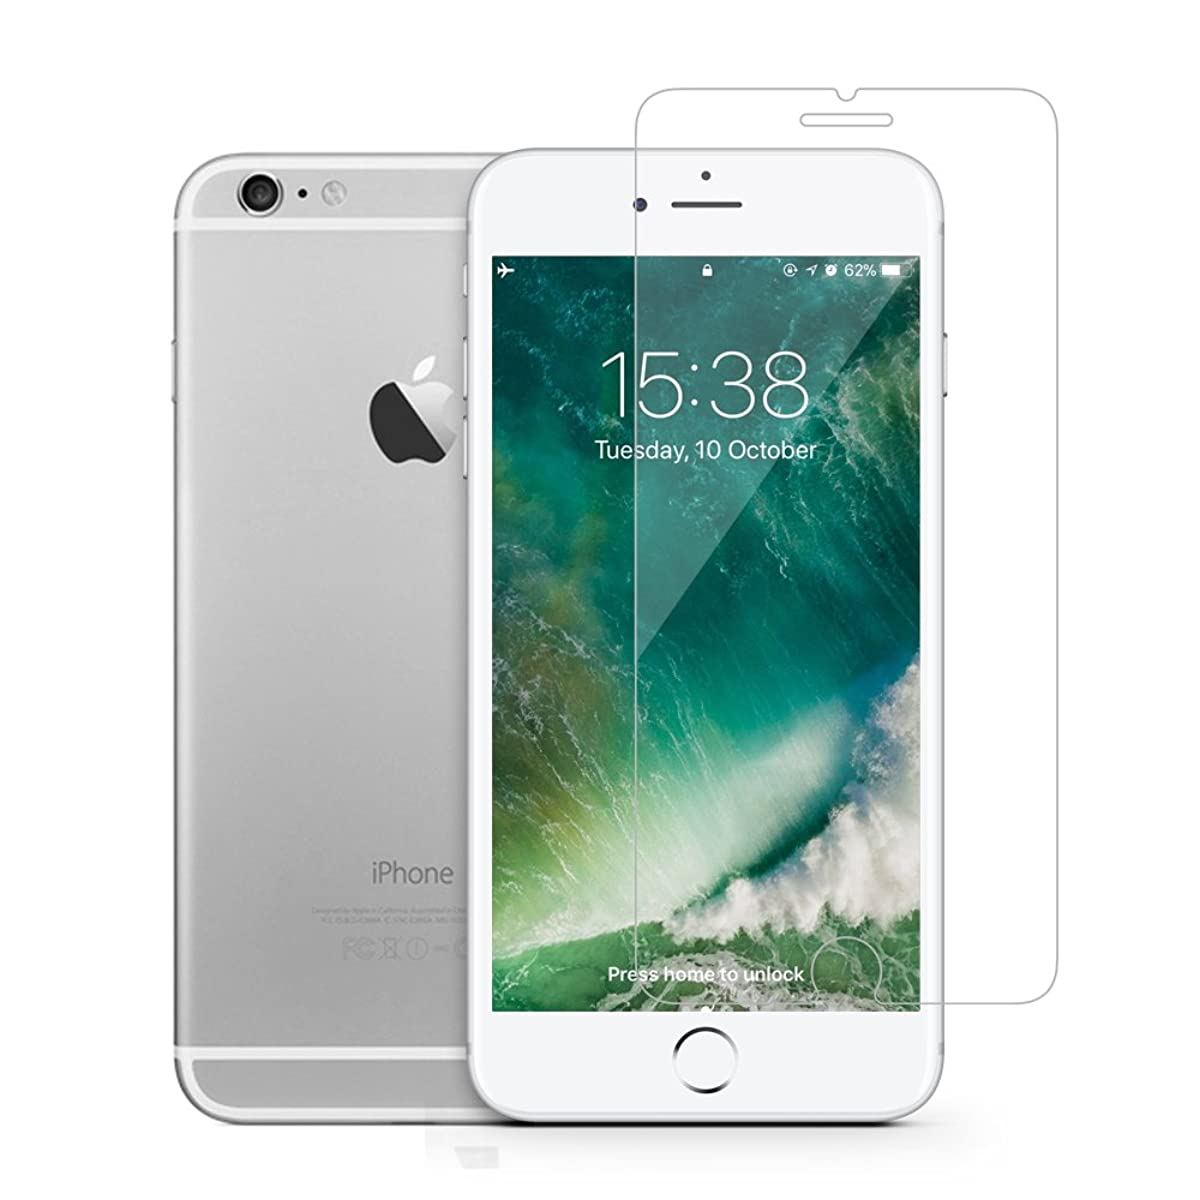 GLASS-M Screen Protector for Apple iPhone 8, iPhone 7, iPhone 6s, iPhone 6, Tempered Glass Film with Lifetime Replacement Warranty